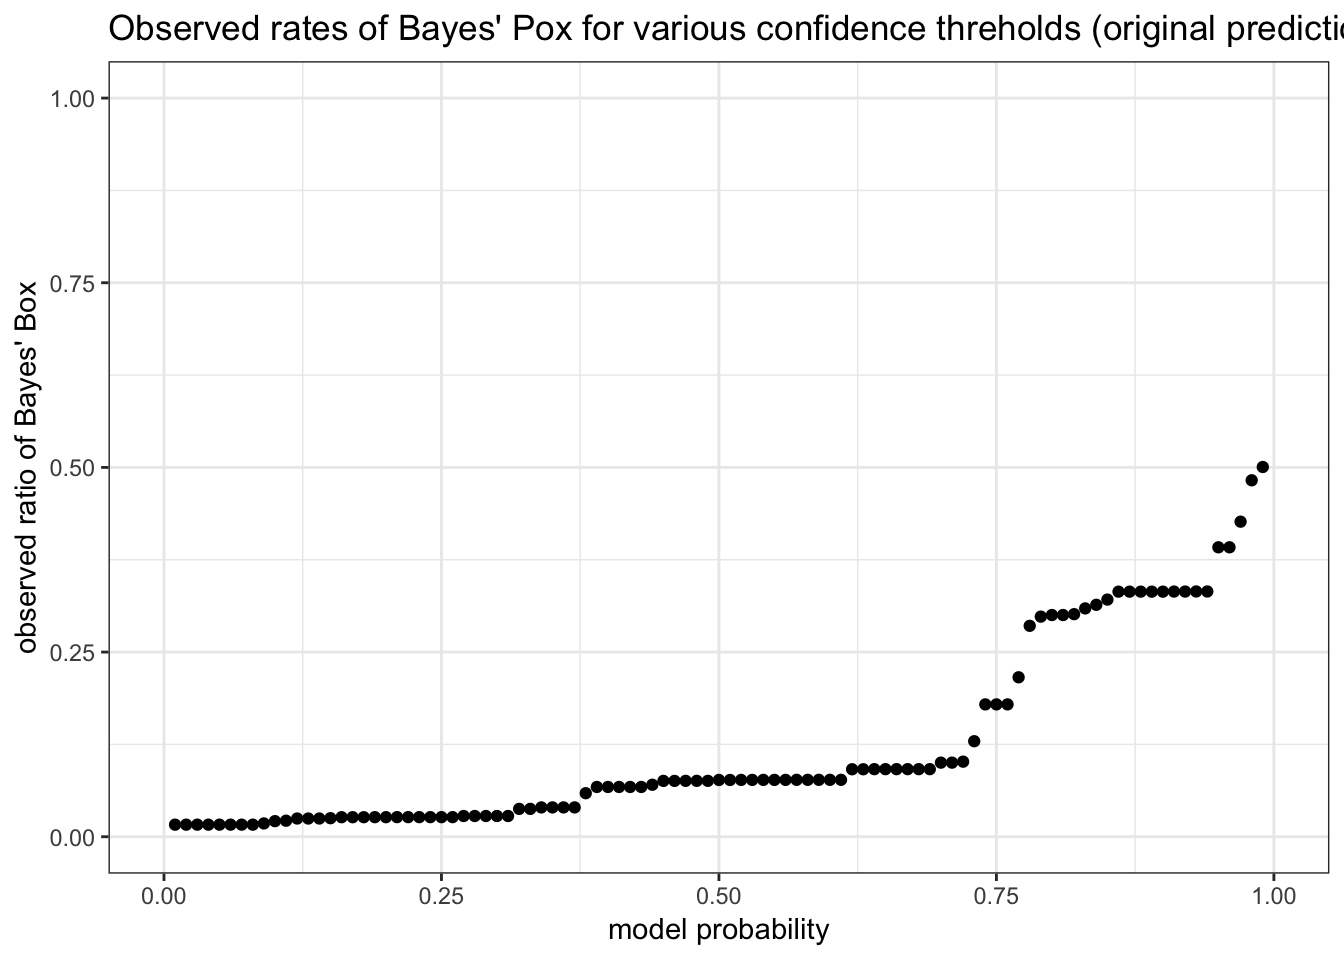 Because it is trained on the wrong prior, the model drastically overestimates the empirical rate of Bayes' Pox.